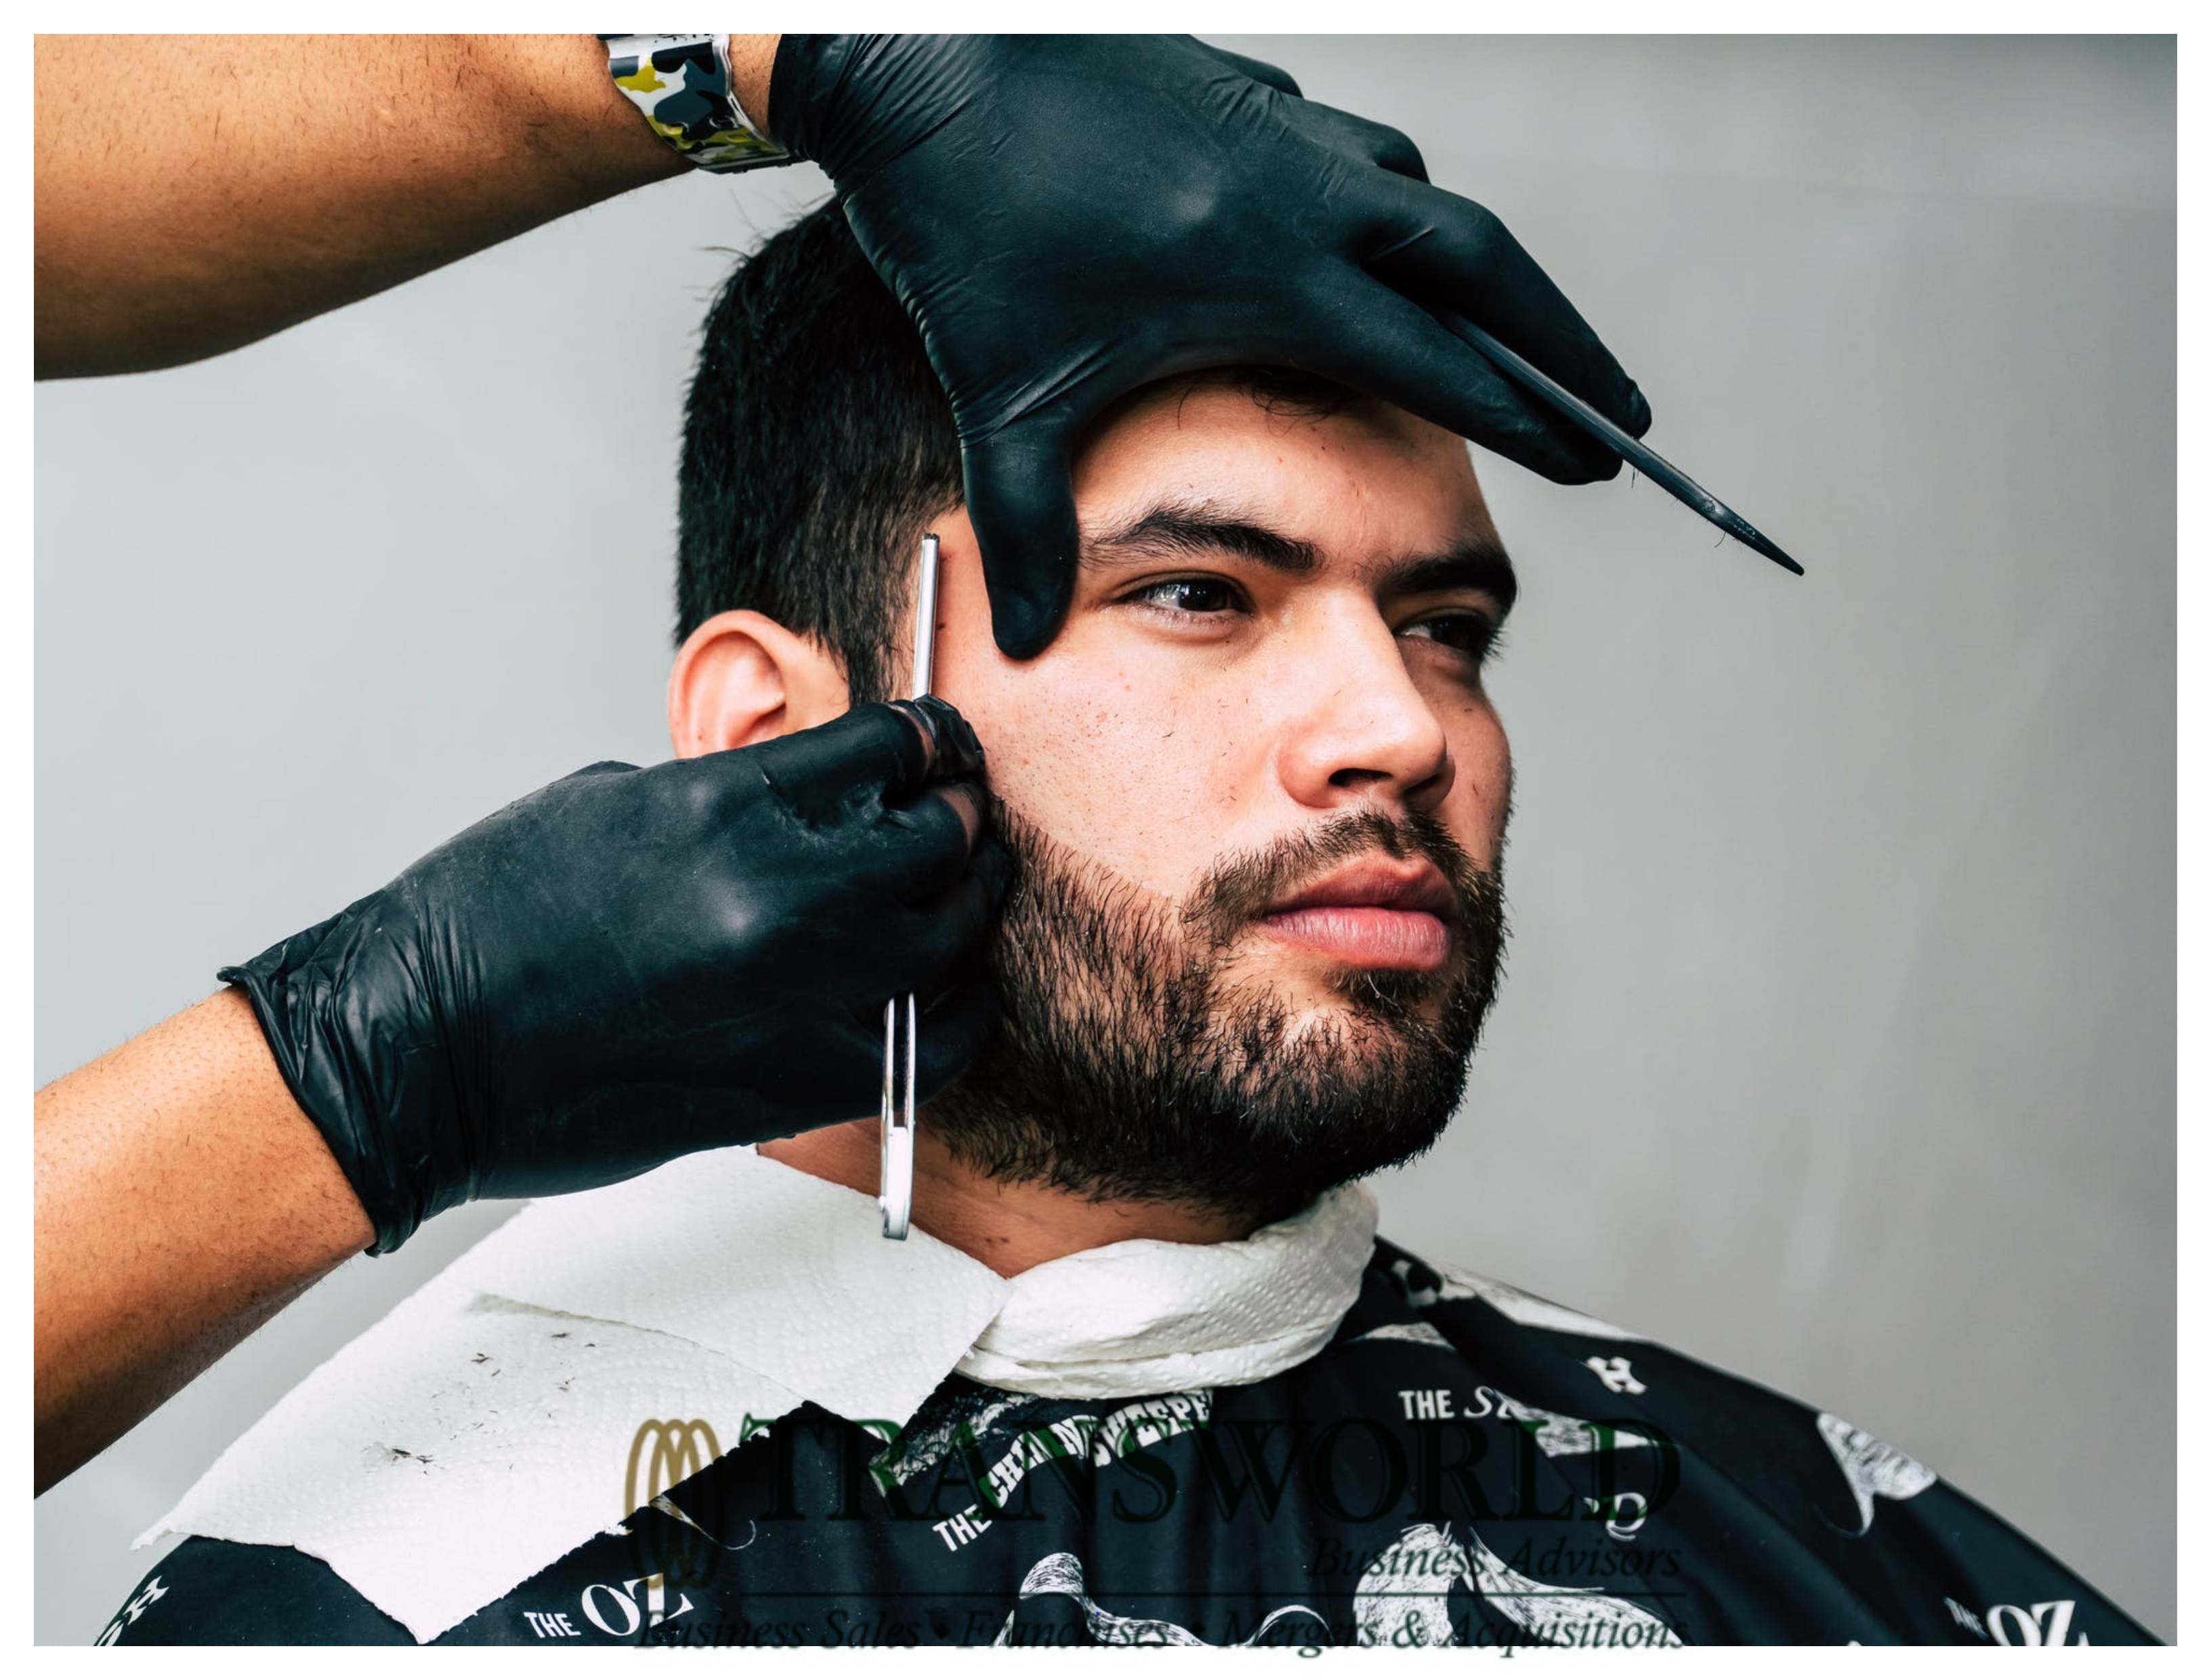 Unique Barber Shop | North Side Brisbane | Call Michael 0411 862 003